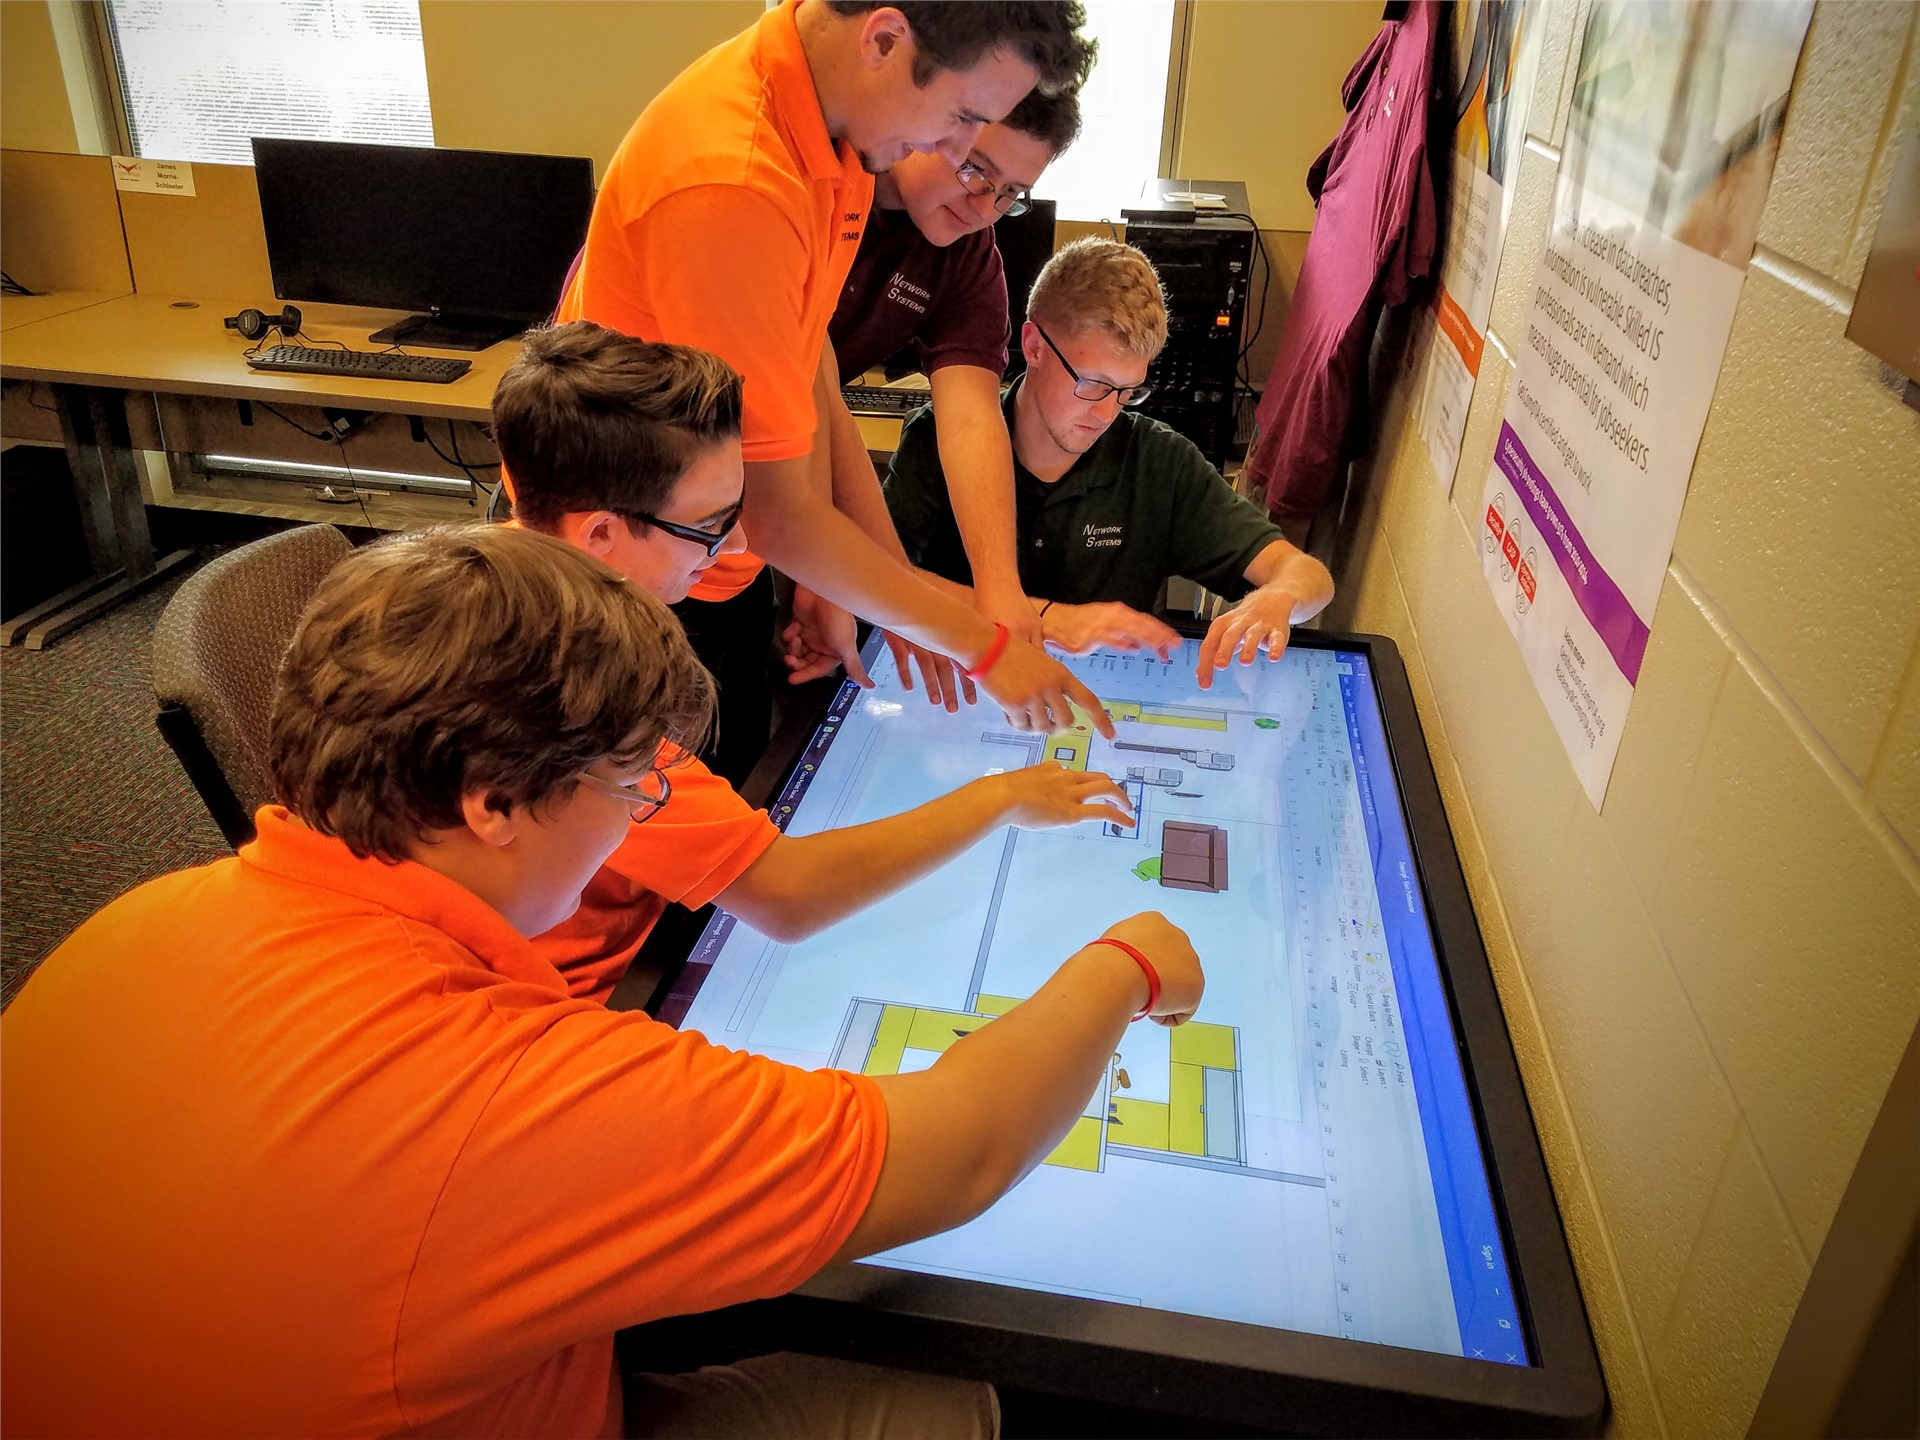 5 male Network Systems students working on a large table top monitor